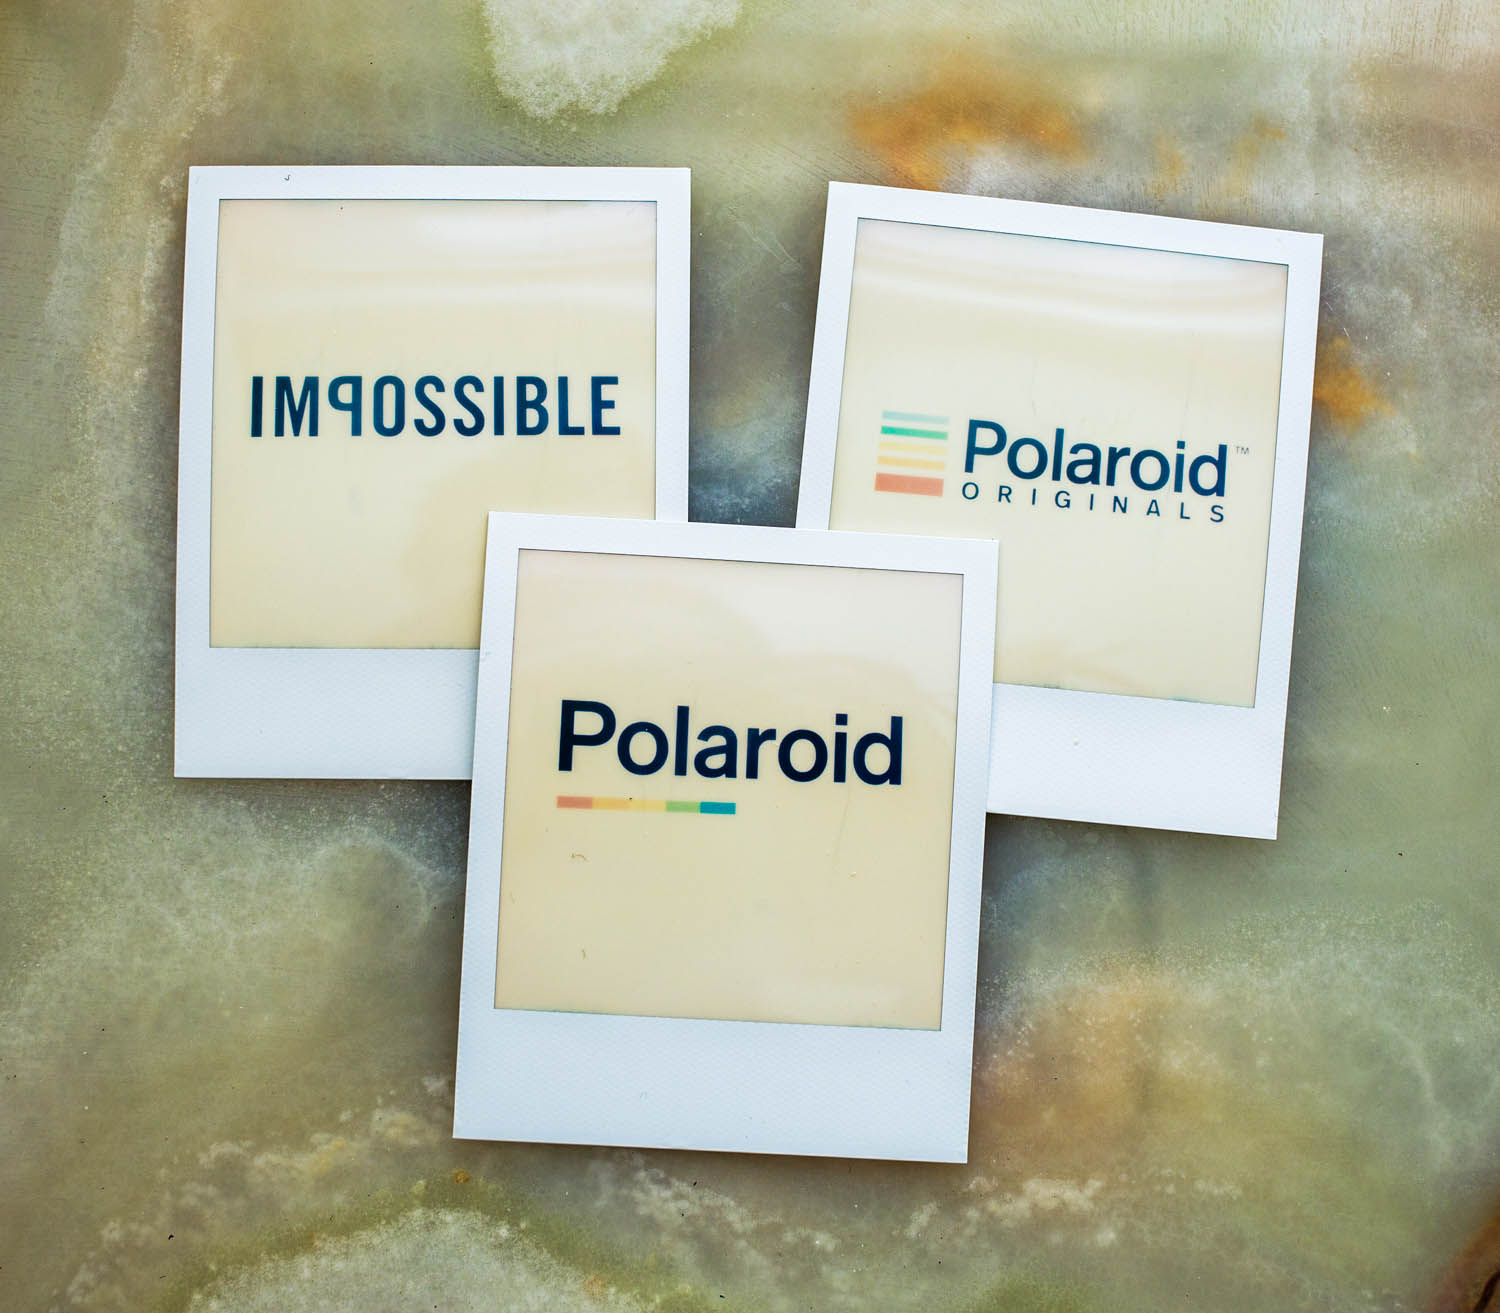 Squaring the circle: Polaroid rises from the ashes of The Impossible Project - image credit, Raymond van Mil